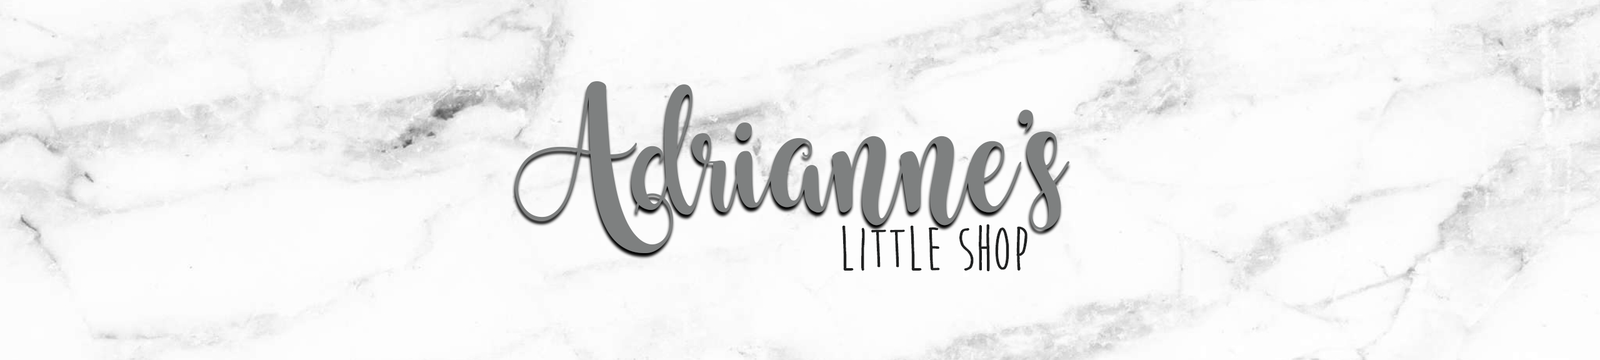 Adrianne's Little Shop